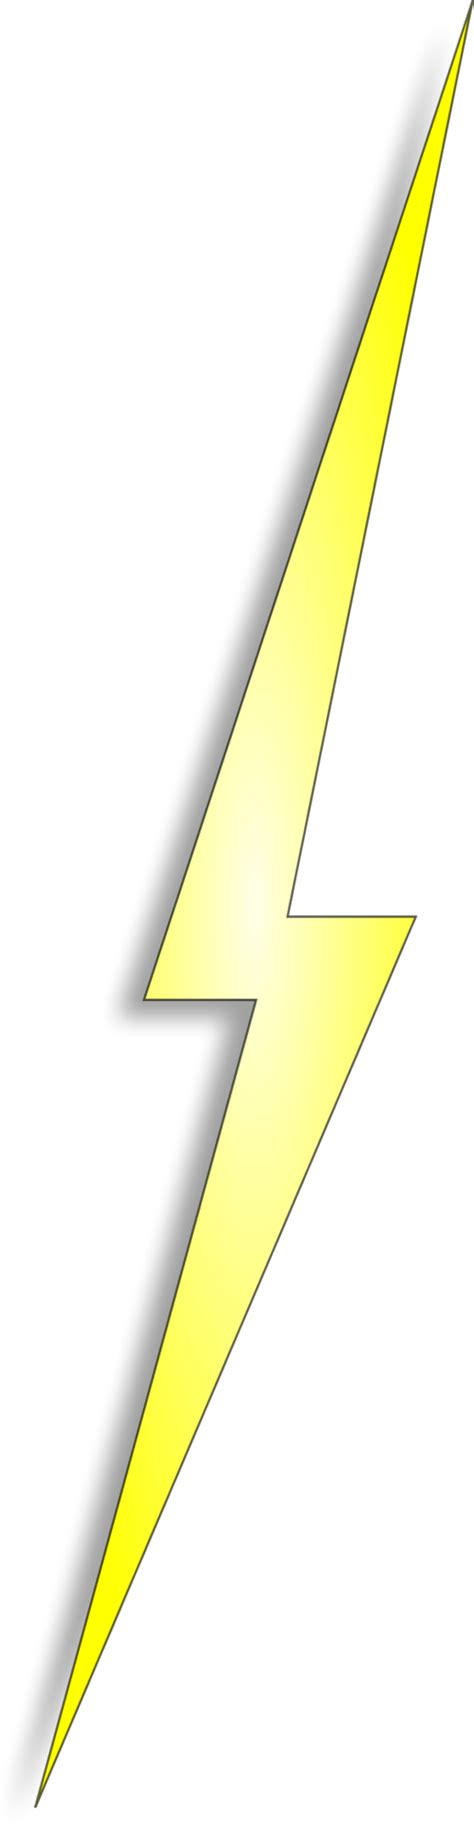 Lightning Clip Lightning Clipart Transparent Background Pencil And In